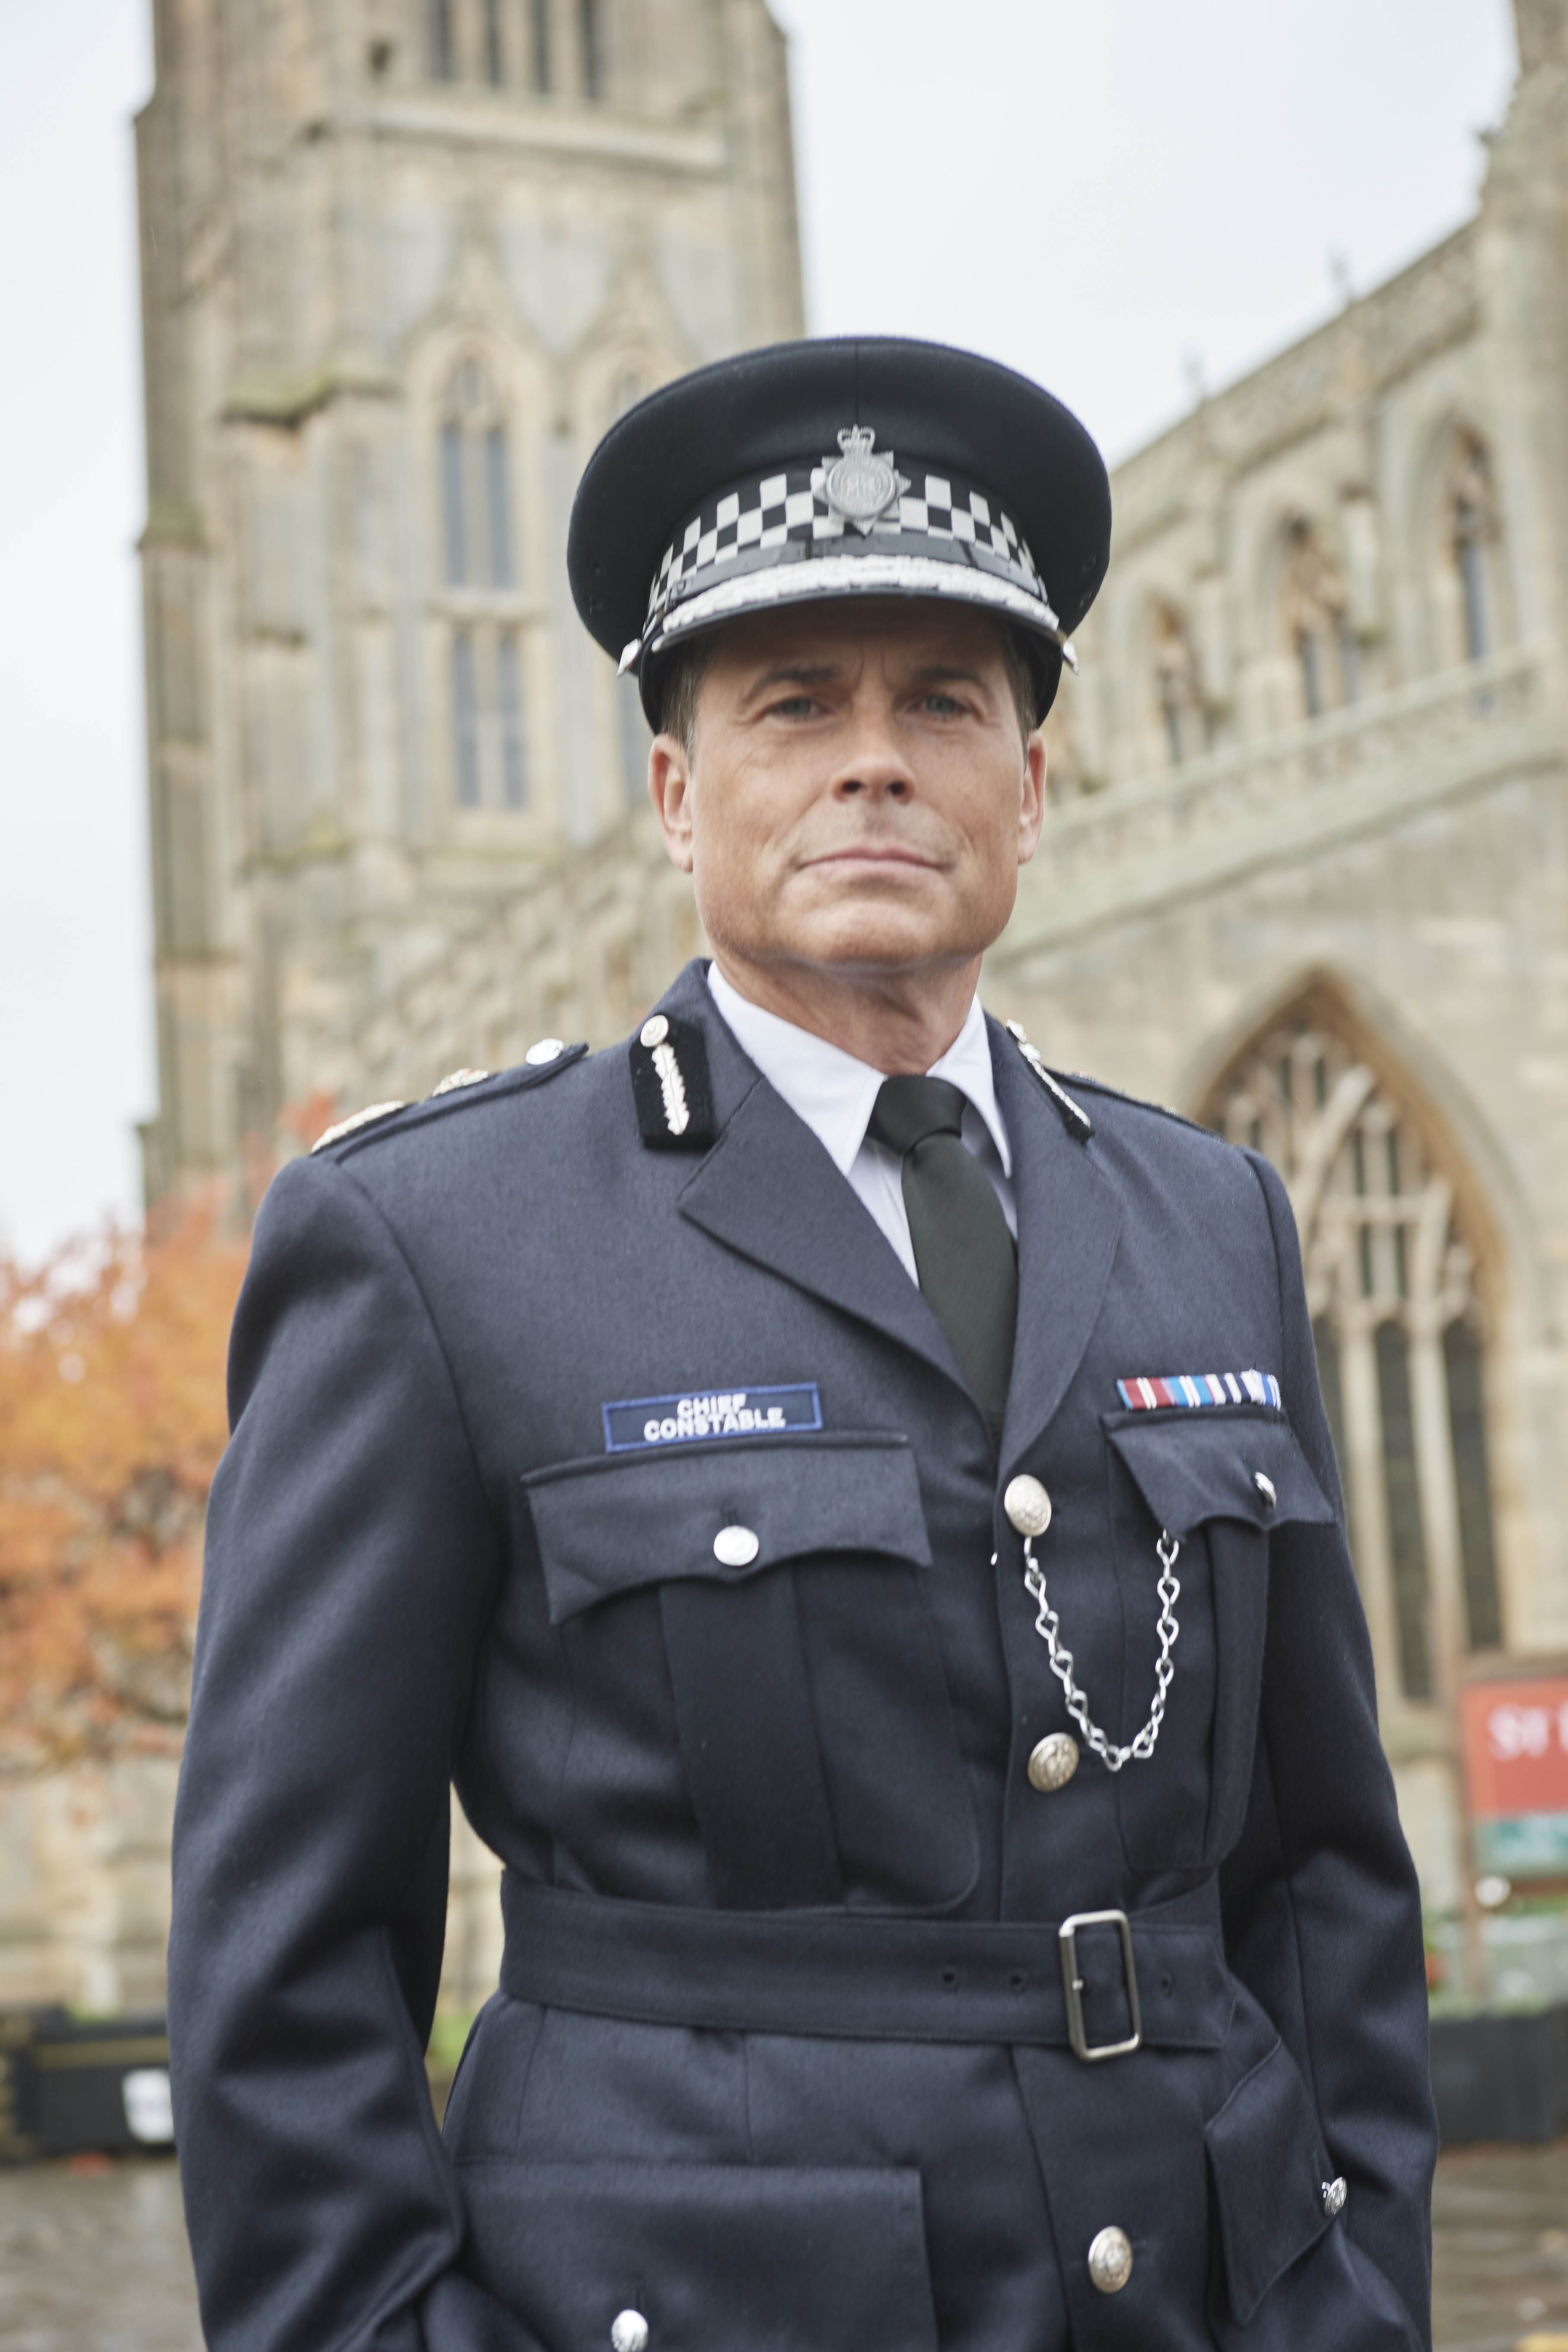 ITV confirms fate of Wild Bill starring Rob Lowe